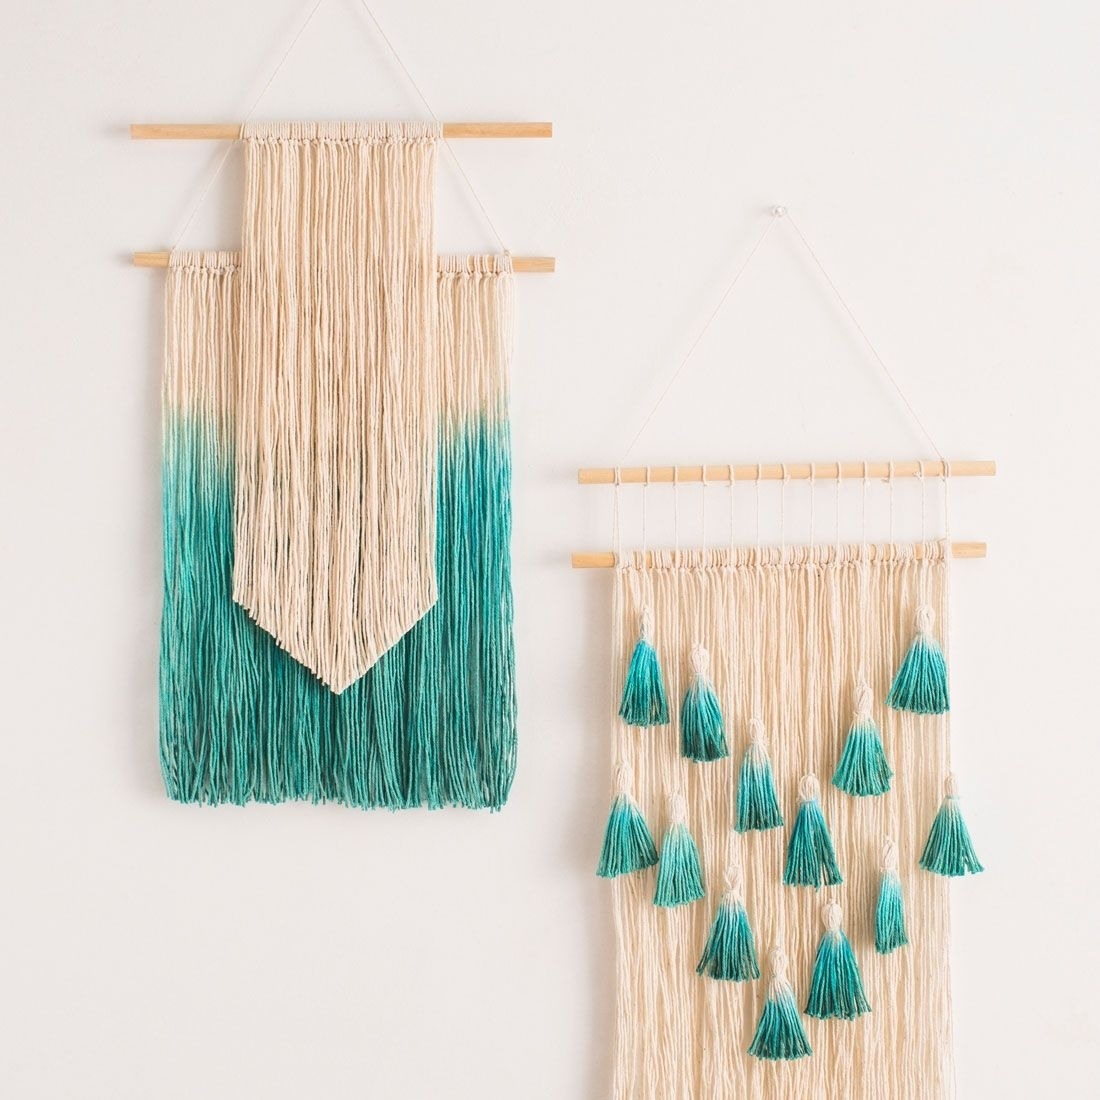 9 Diys For Your College Apartment | Diy Wall Art, Diy Wall And Intended For Most Popular Fabric Wall Hangings Art (View 11 of 15)